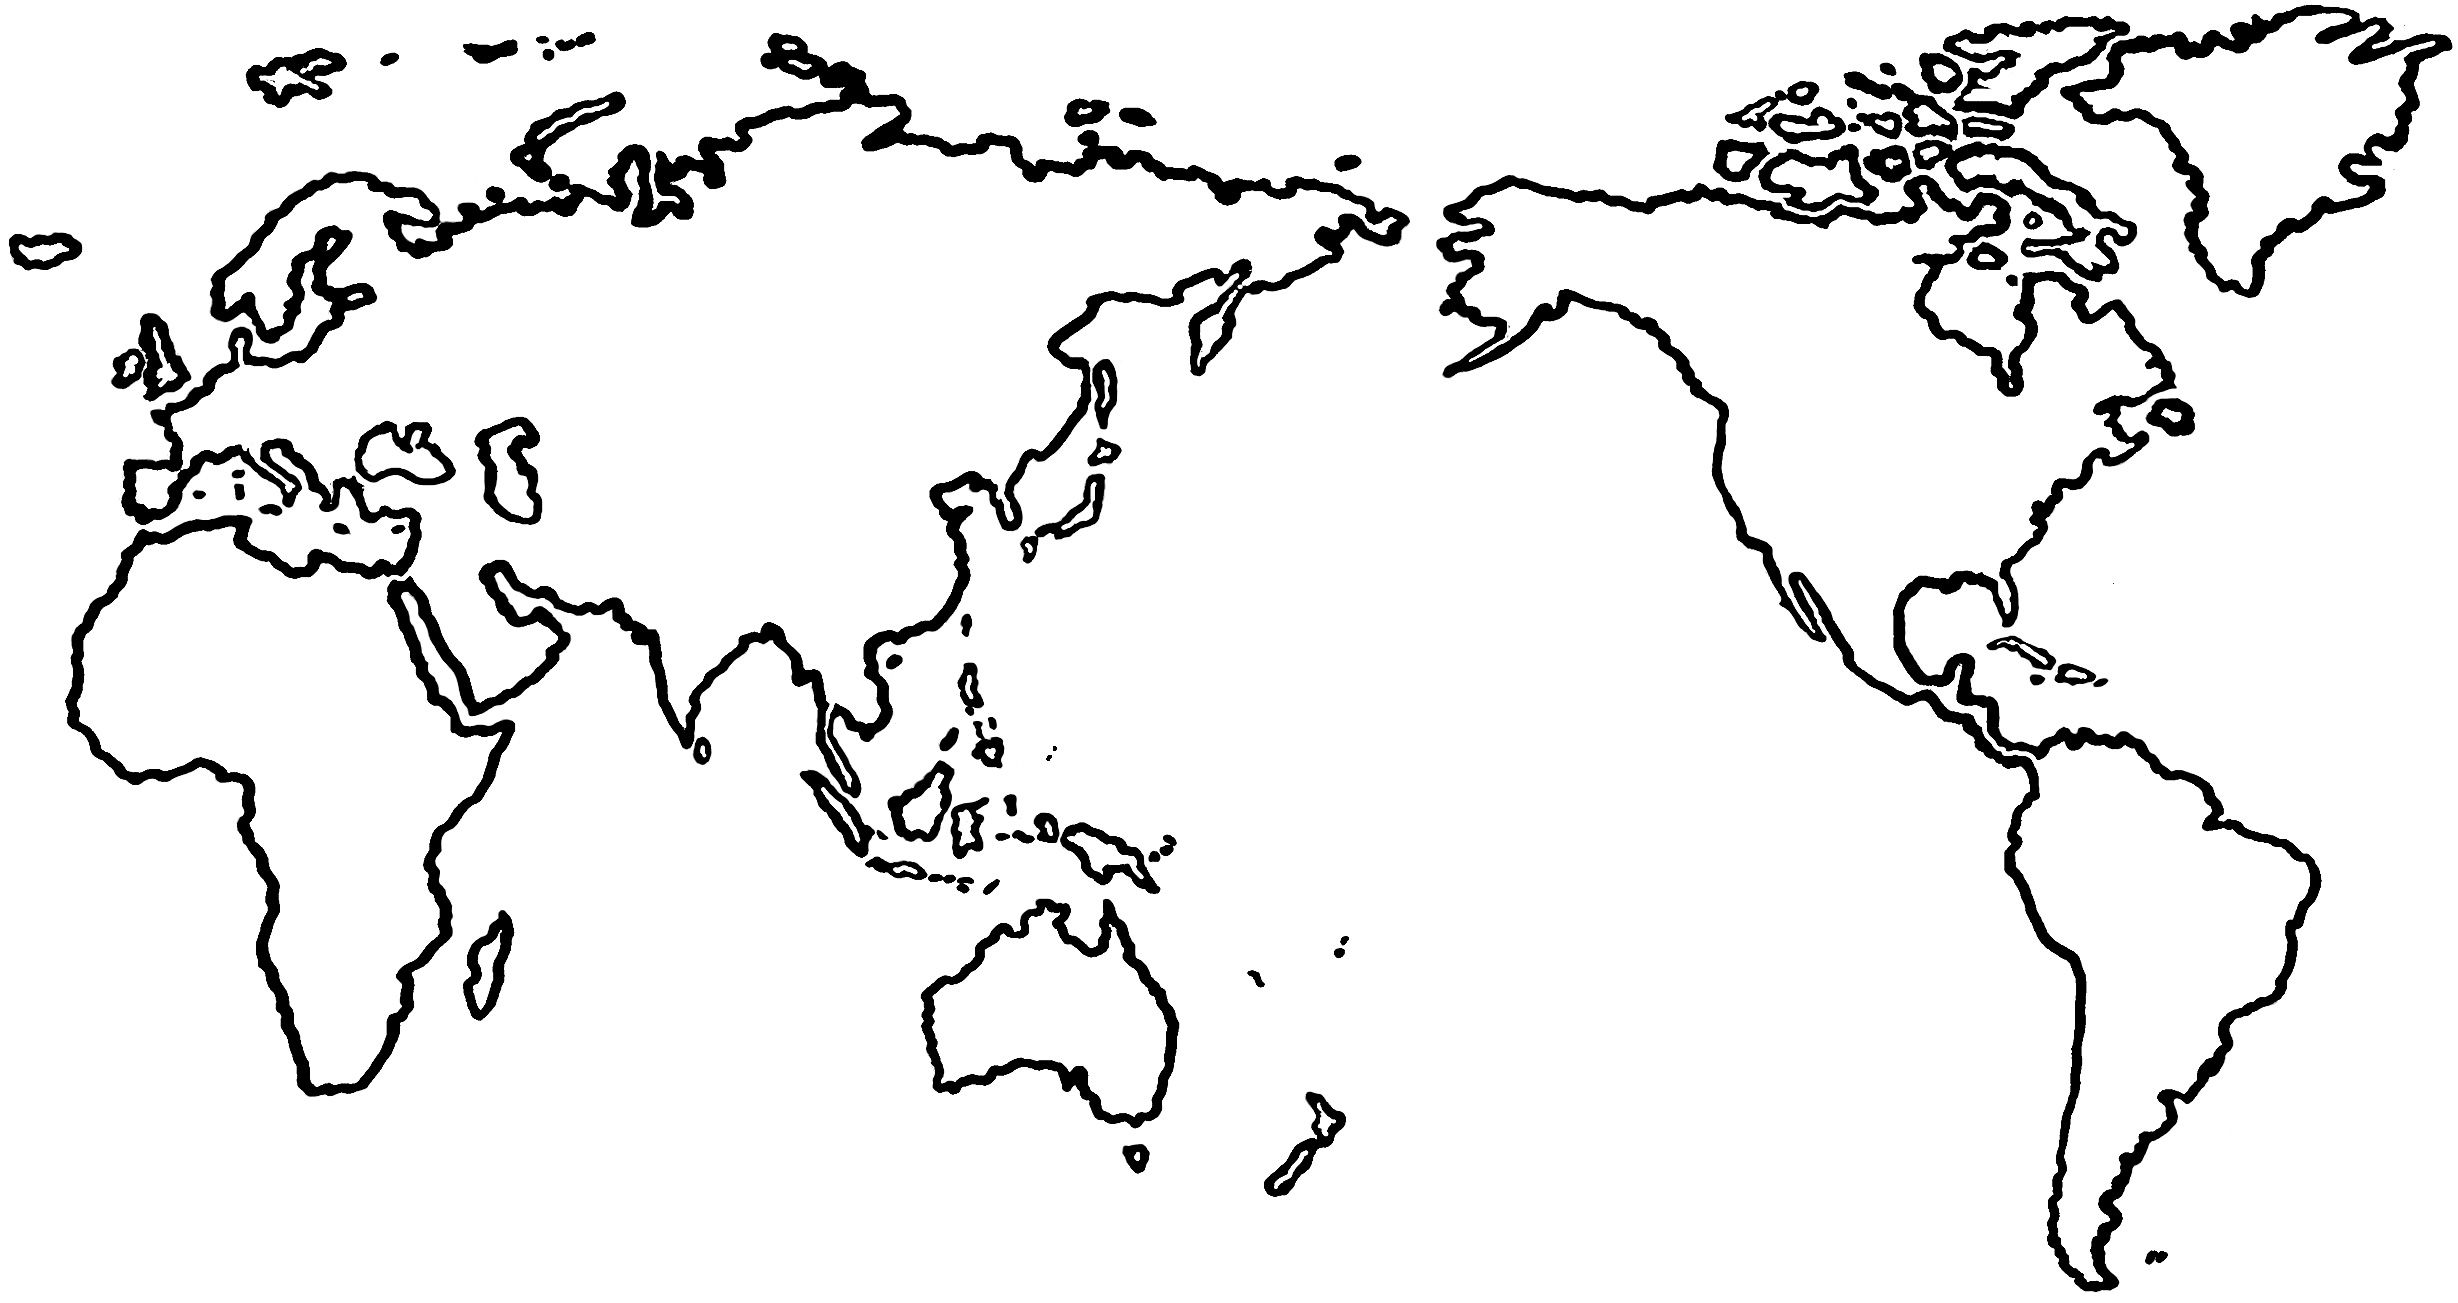 How to draw map of world open this world map template jpeg and how to draw map of world open this world map template jpeg and save it to your disk gumiabroncs Image collections